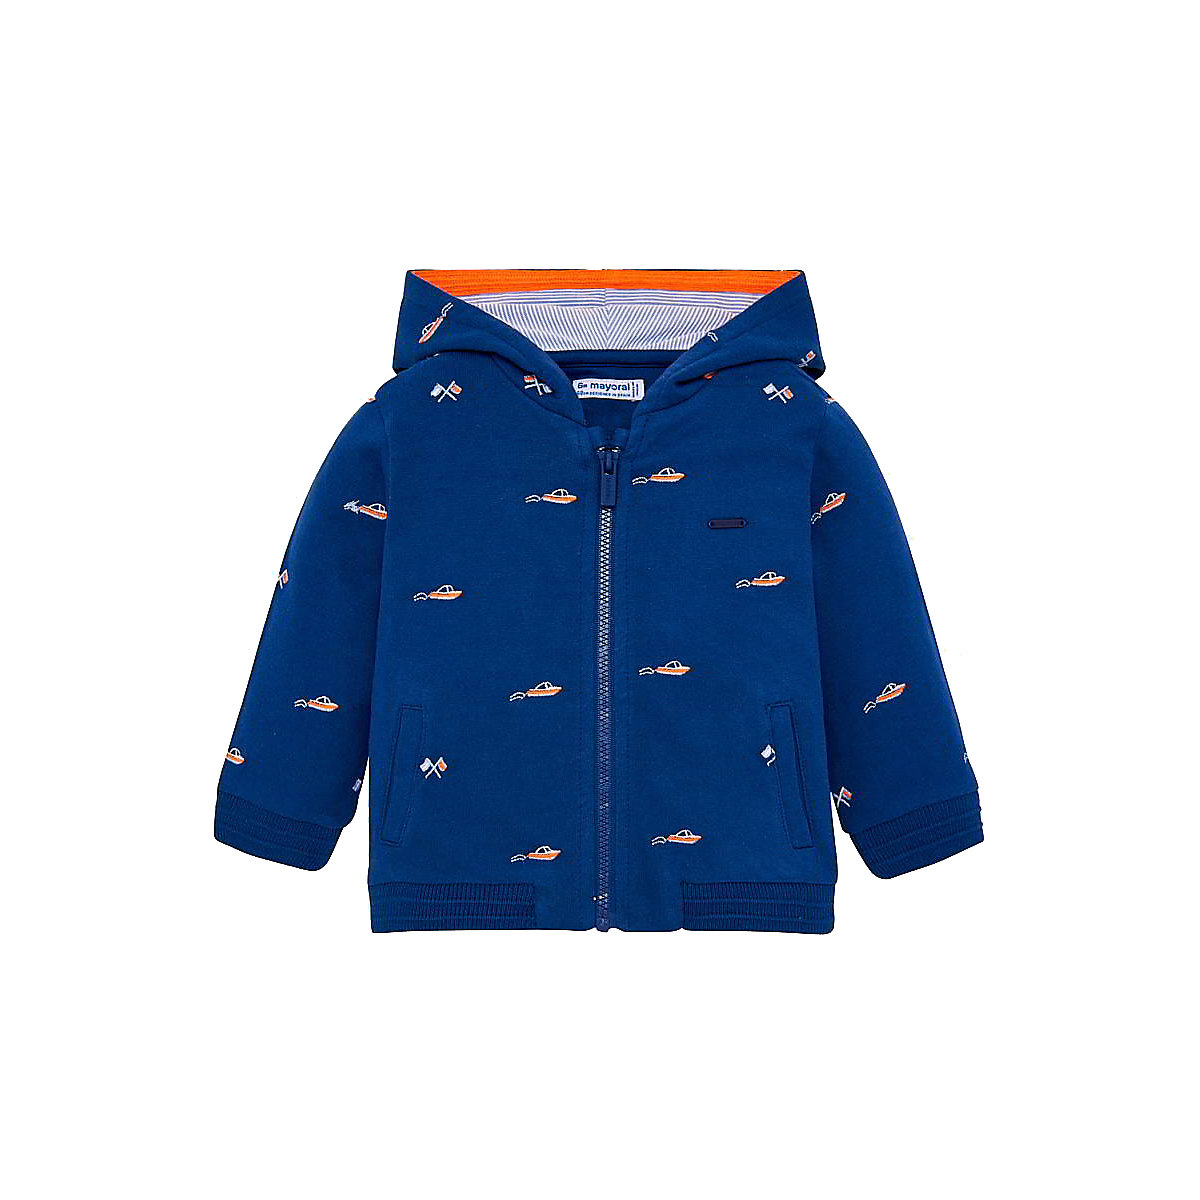 Фото - MAYORAL Hoodies & Sweatshirts 10678646 pullover jumper for boys and girls clothes children's sweatshirt Cotton Boys mayoral sweaters 10692403 pullover jumper for boys and girls jackets boys